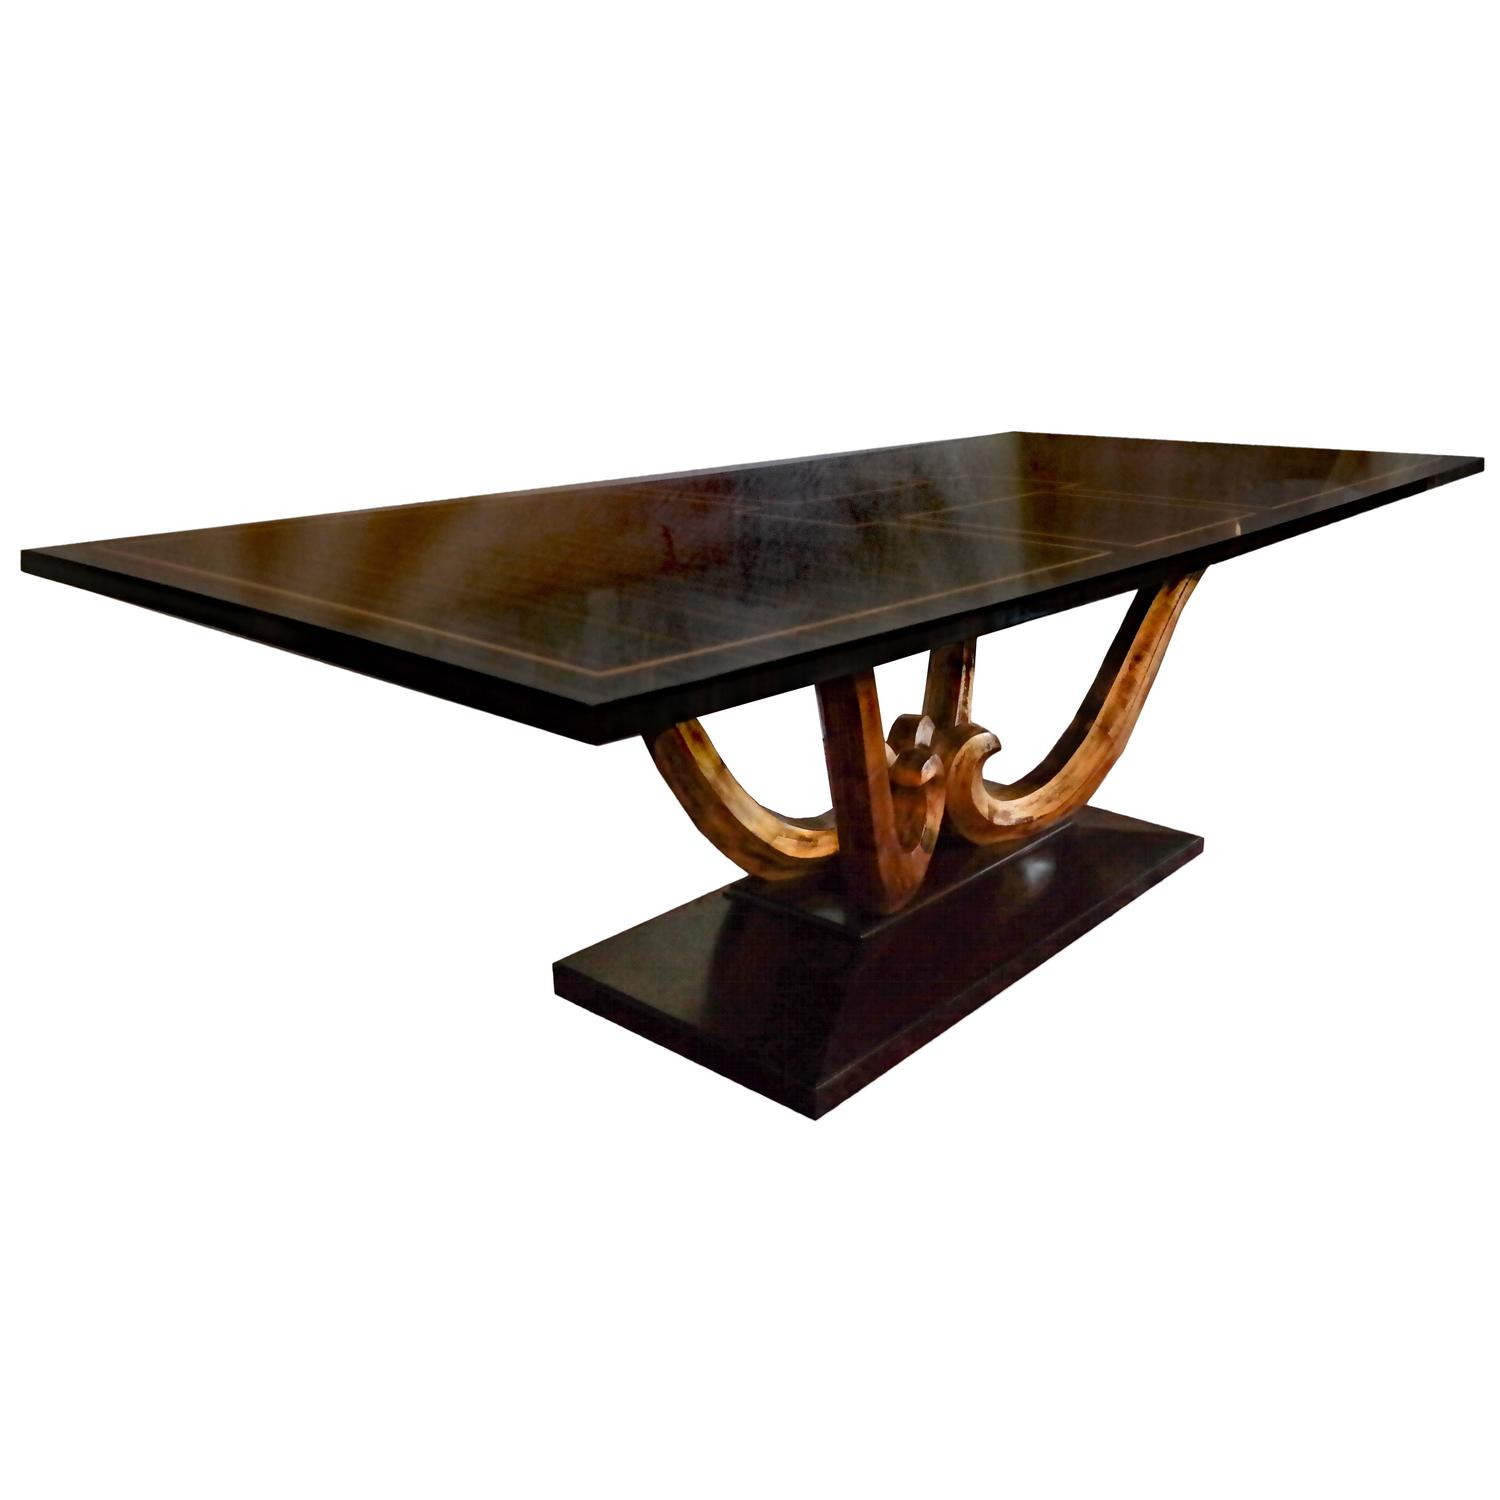 Dining Room Table Bases Wood: Large Ebony Wood Dining Table On Pedestal Base For Sale At